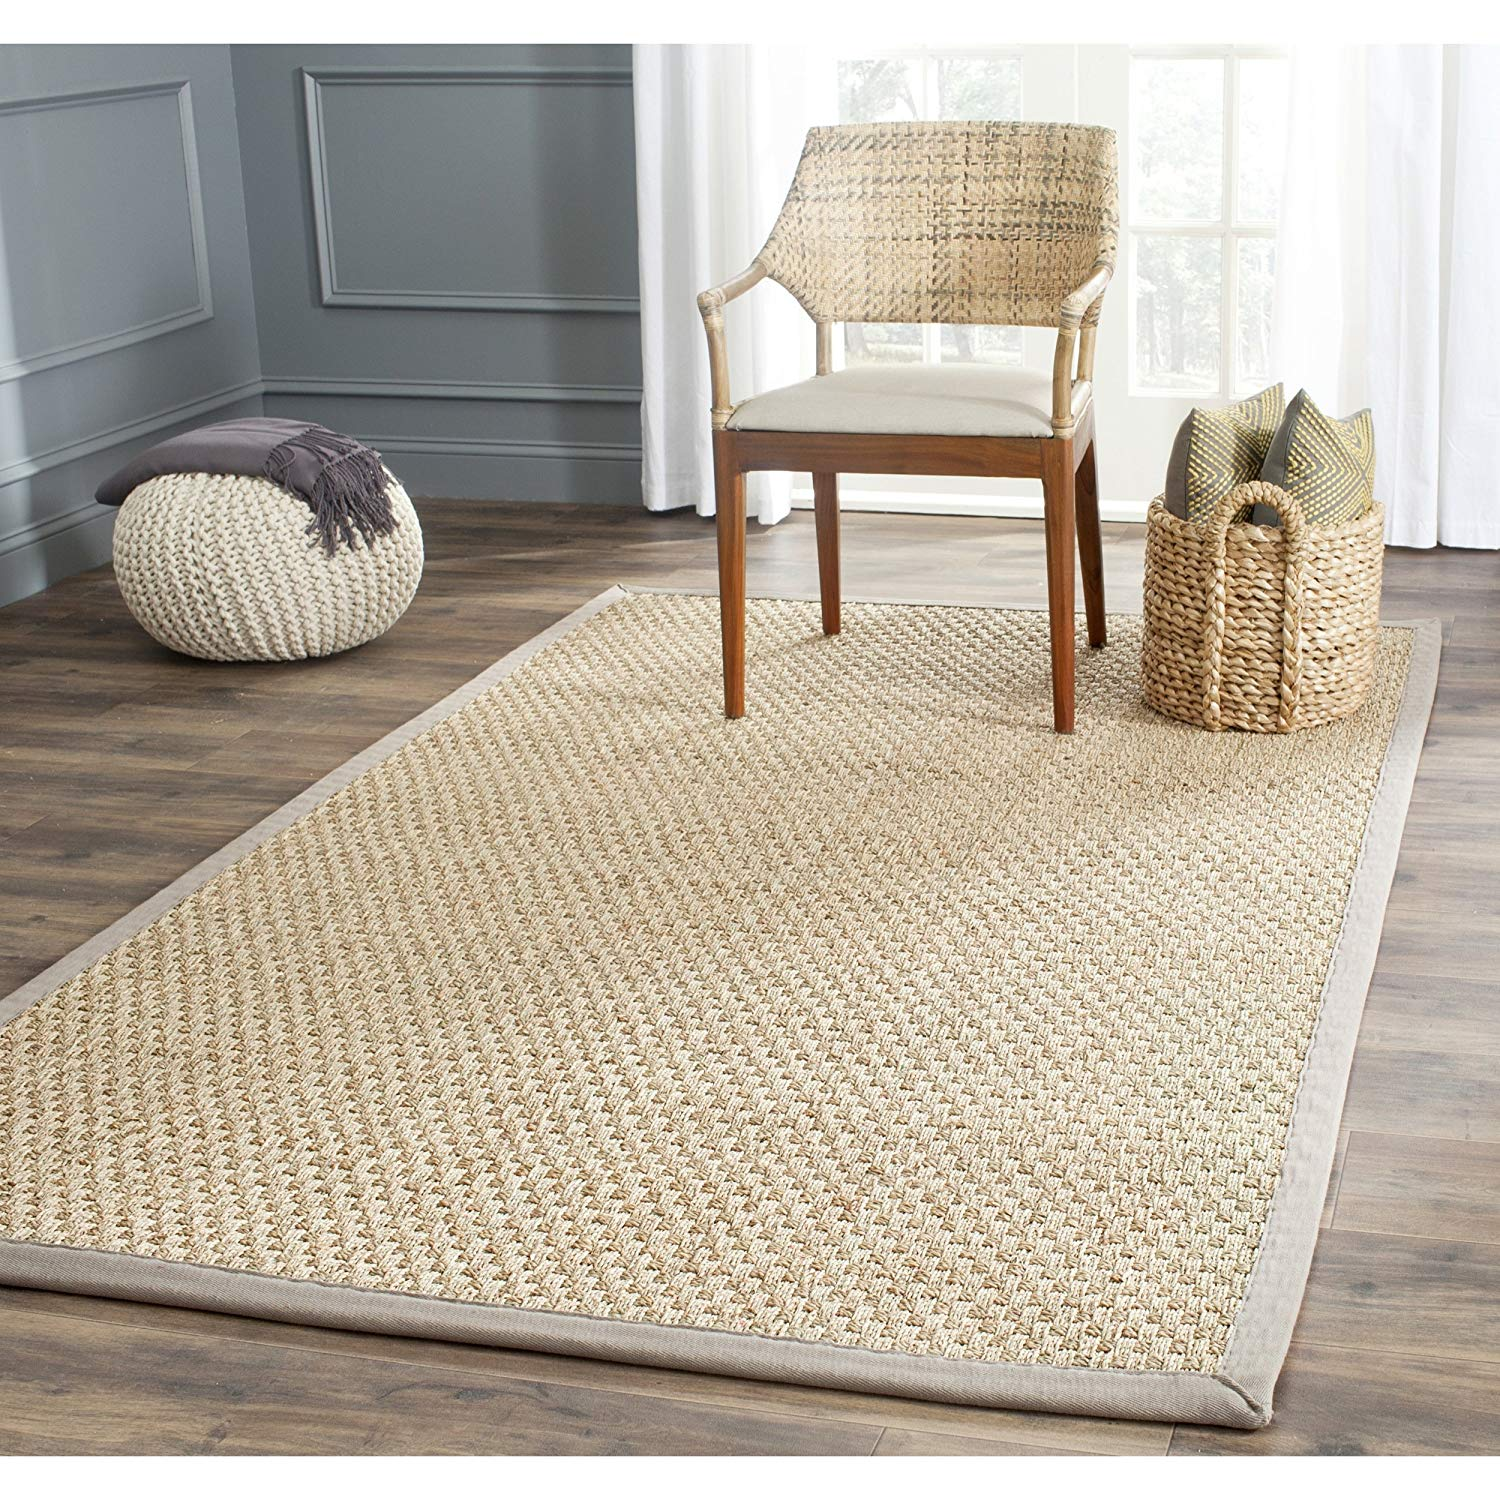 seagrass rugs amazon.com: safavieh natural fiber collection nf114p basketweave natural  and grey summer seagrass VDQBODY